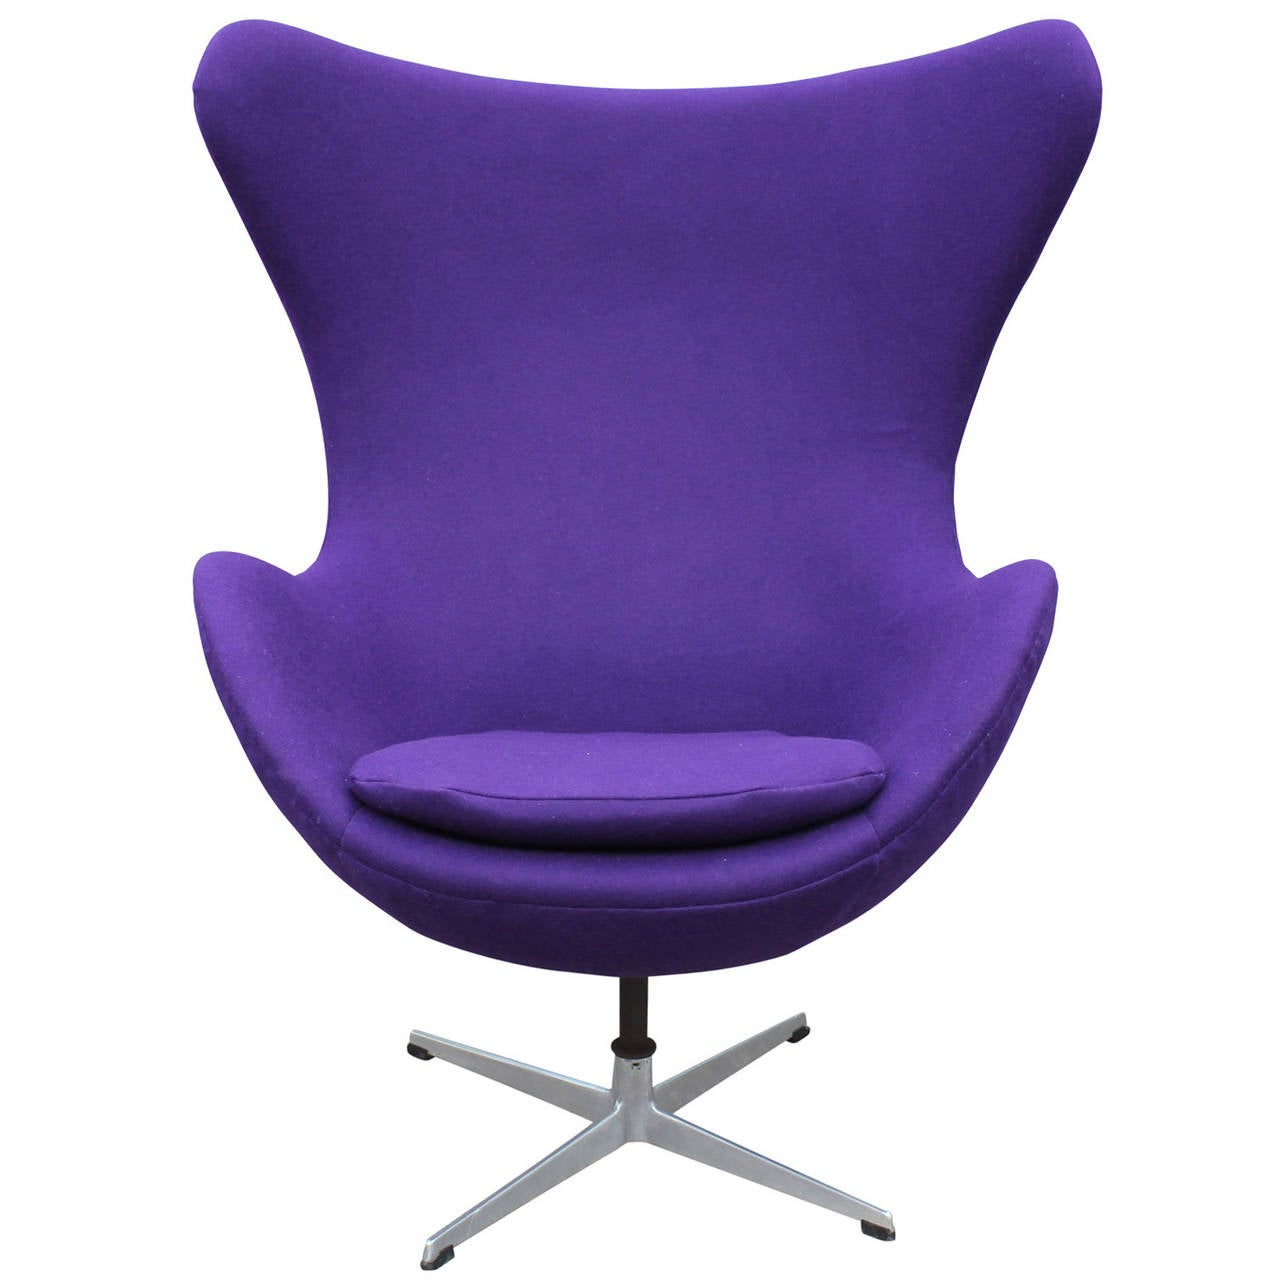 Egg Chairs Modern Arne Jacobson Egg Chair In Royal Purple Danish